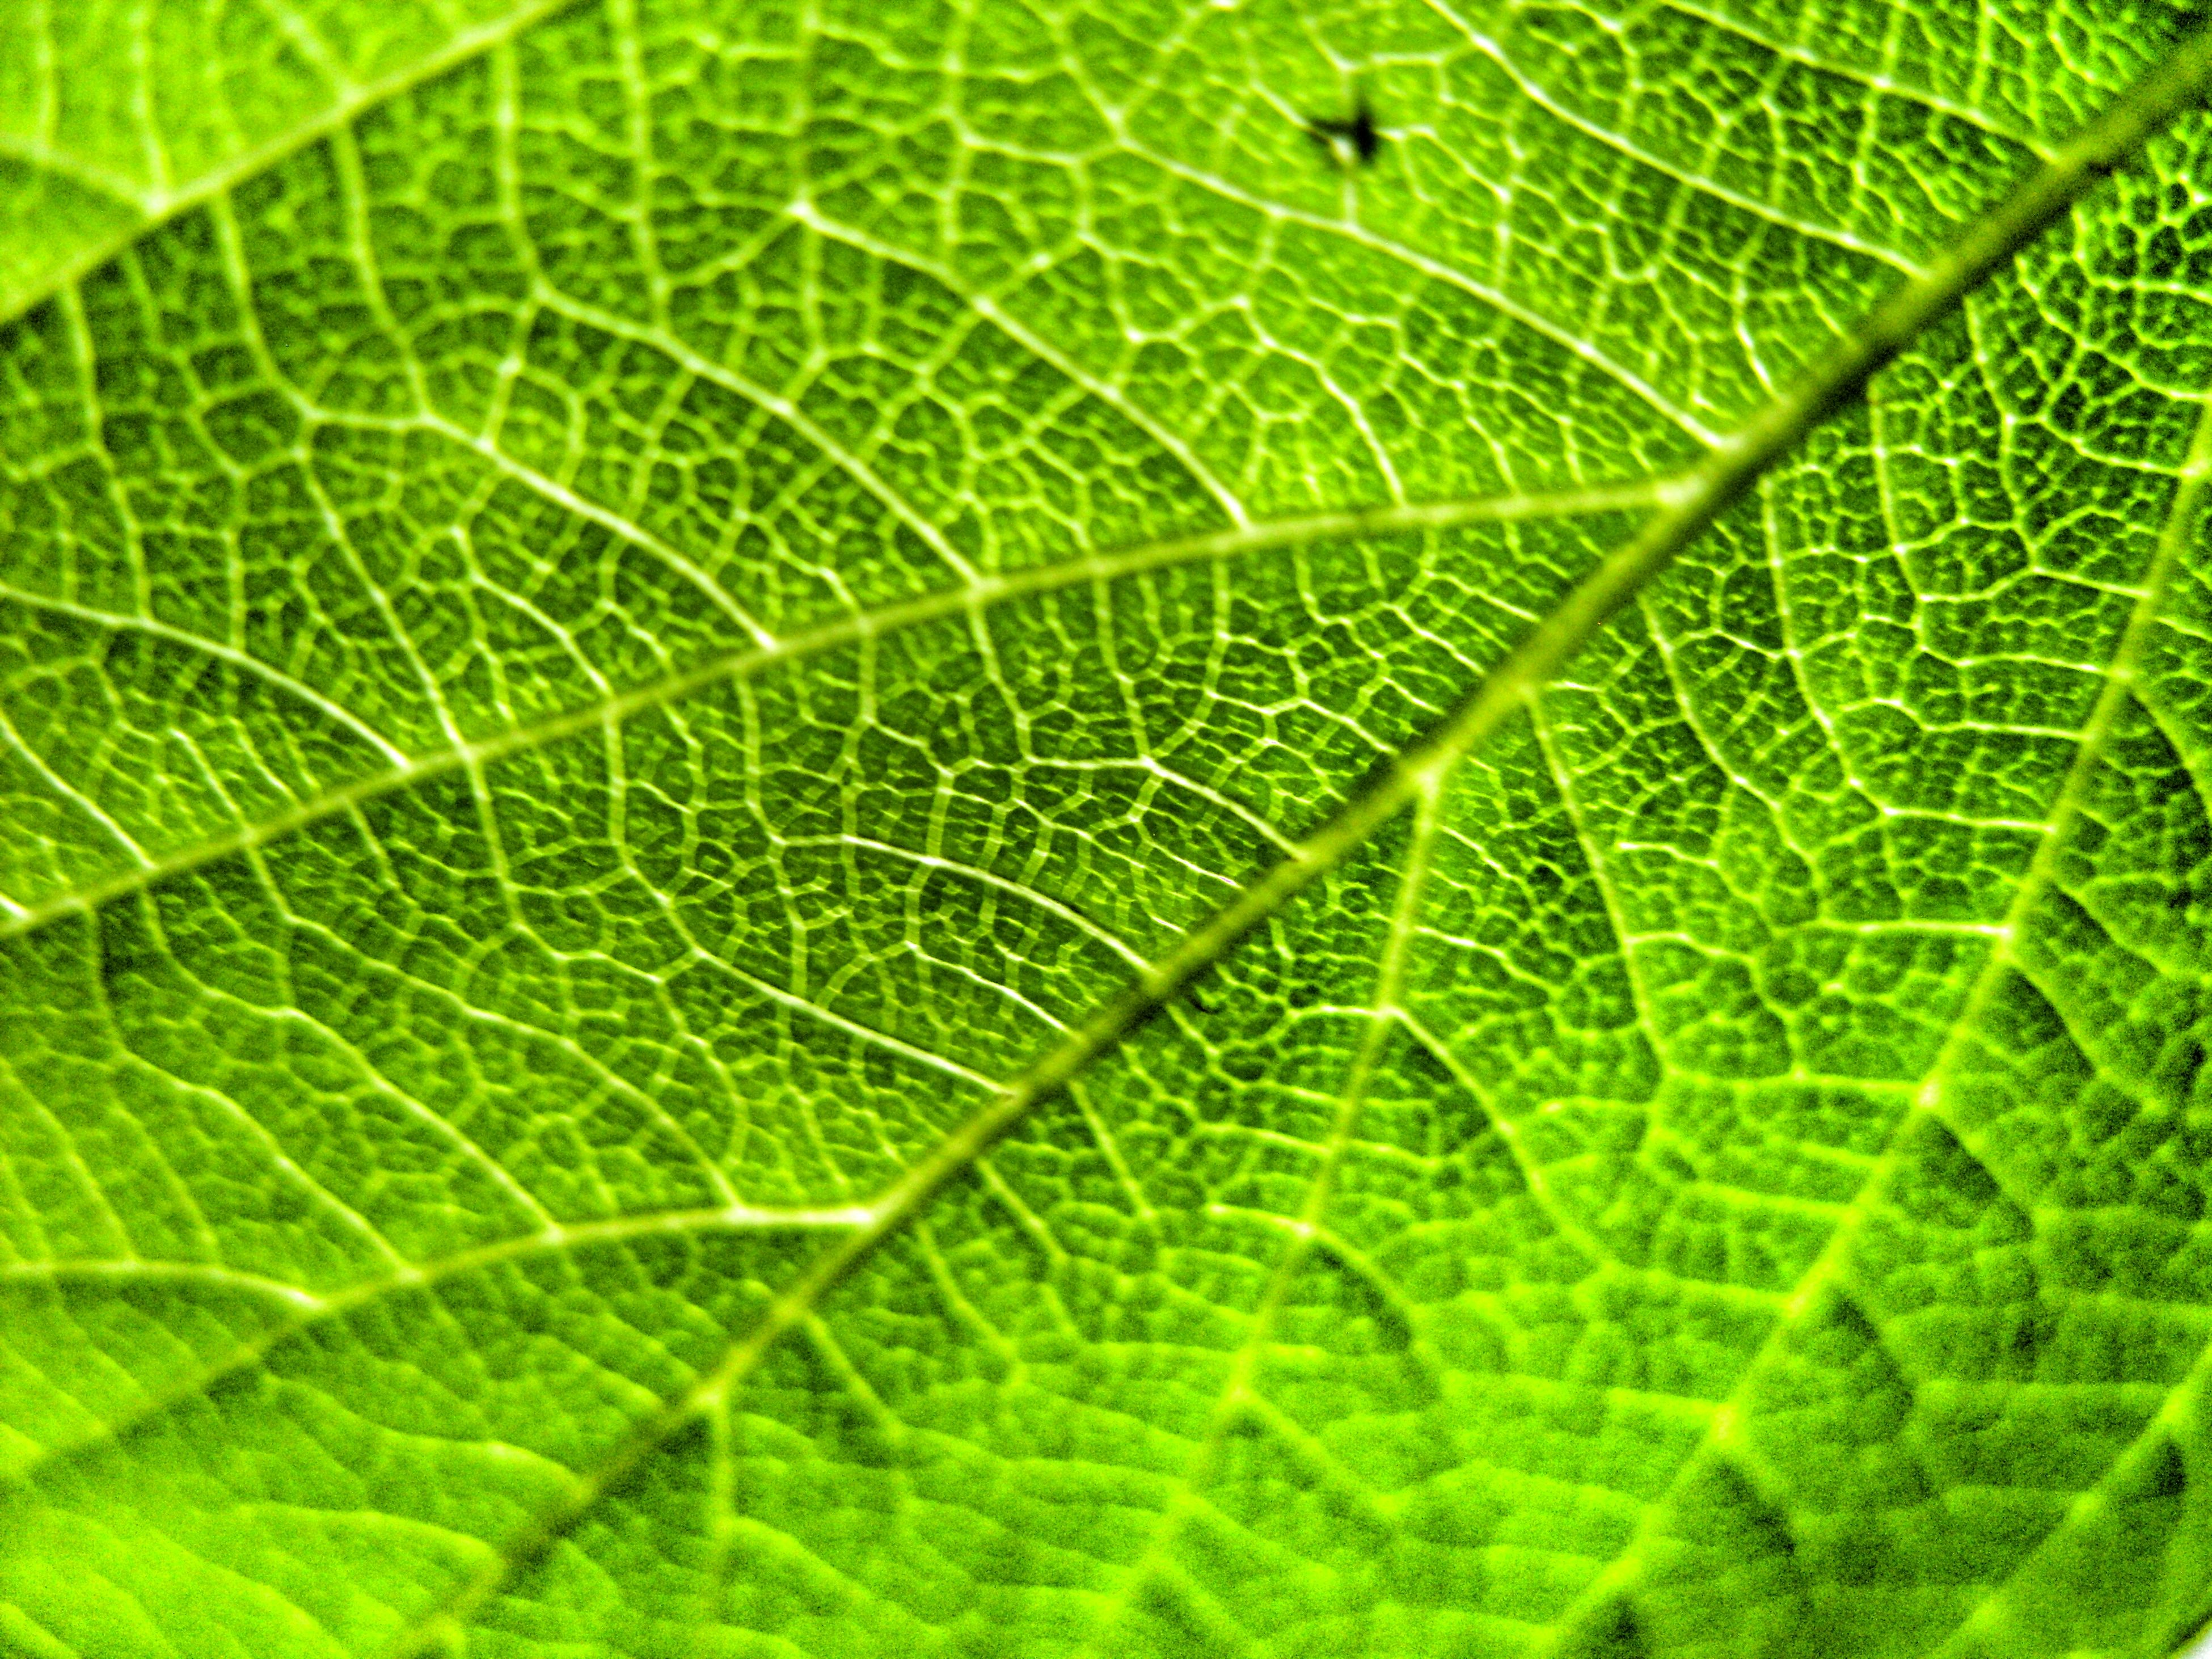 green color, leaf, leaf vein, natural pattern, full frame, close-up, backgrounds, nature, growth, pattern, beauty in nature, plant, freshness, green, high angle view, outdoors, day, no people, fragility, tranquility